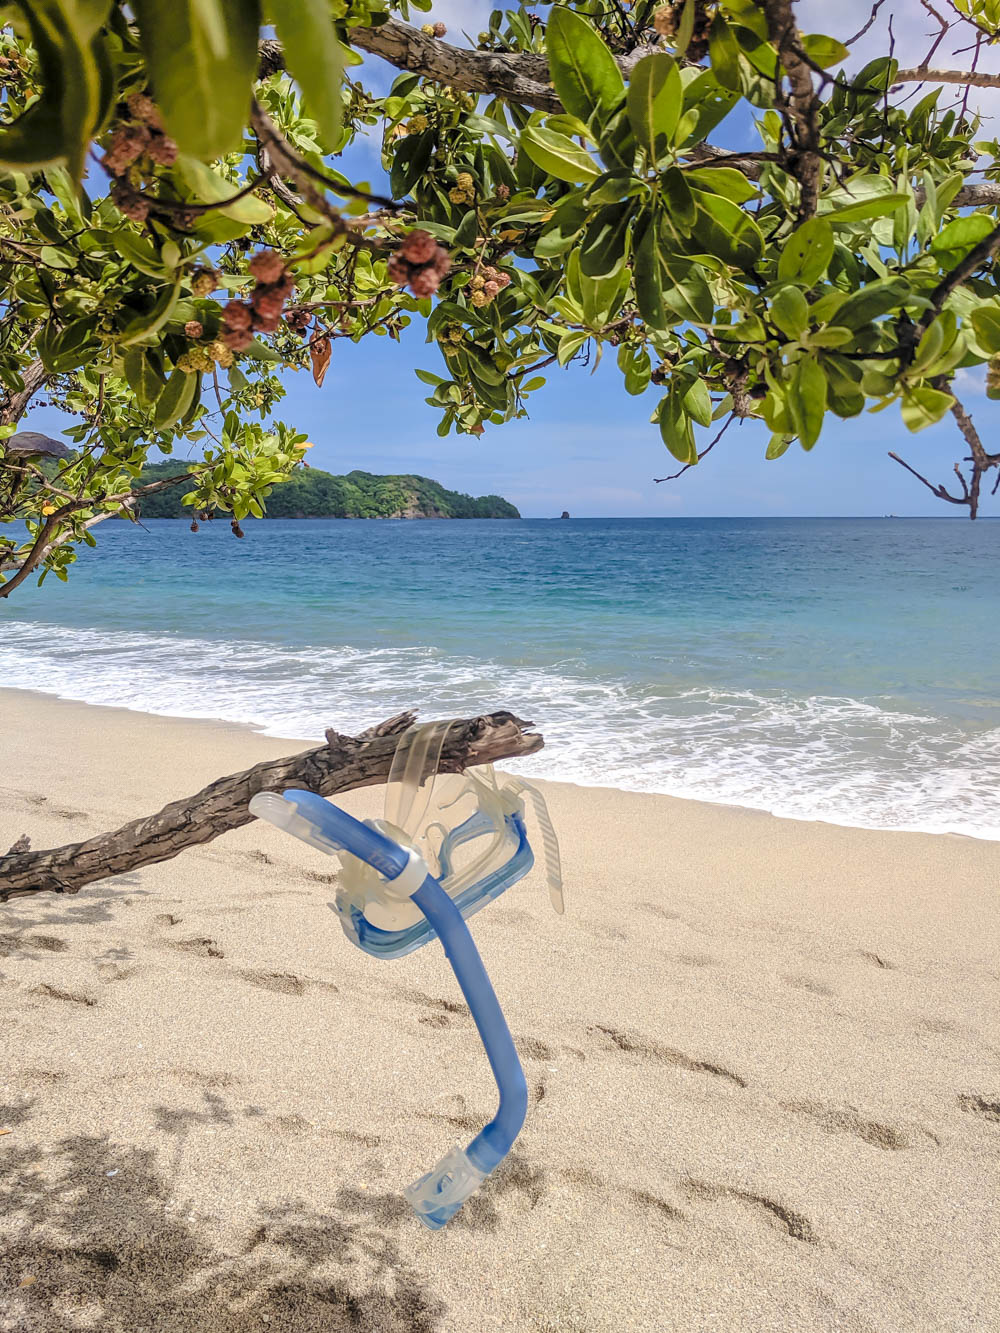 Costa Rica beach | How to NOT guide for getting robbed abroad | What to do before, during, and after getting robbed abroad. Pickpocketing in Europe, travel insurance, etc. #traveltips #europe